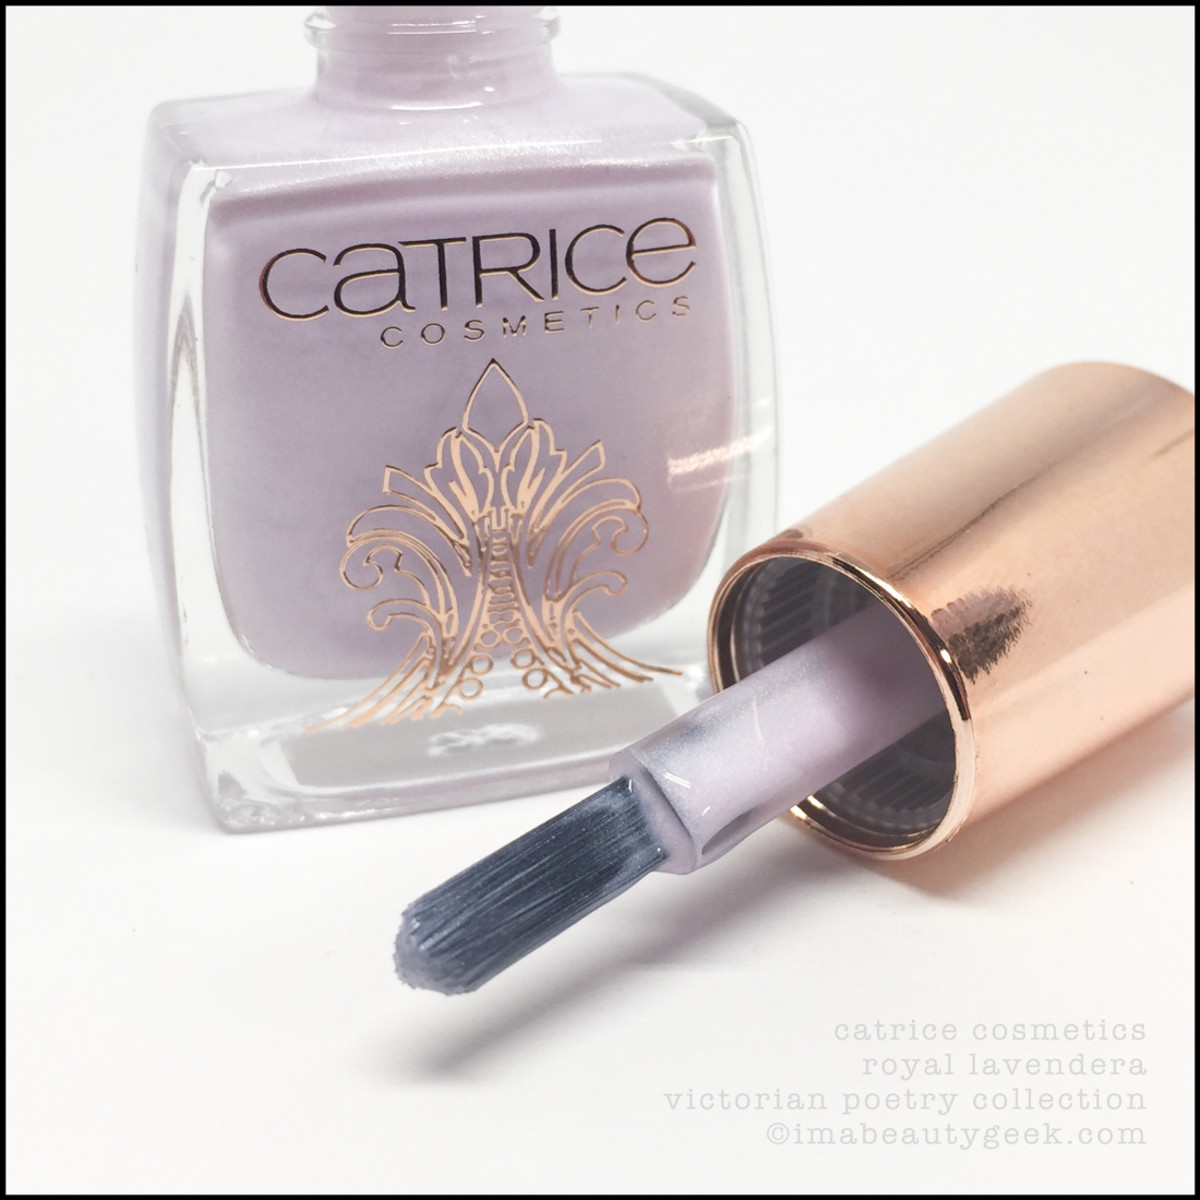 Catrice Royal Lavendera Nail Polish Brush_Victorian Poetry Collection